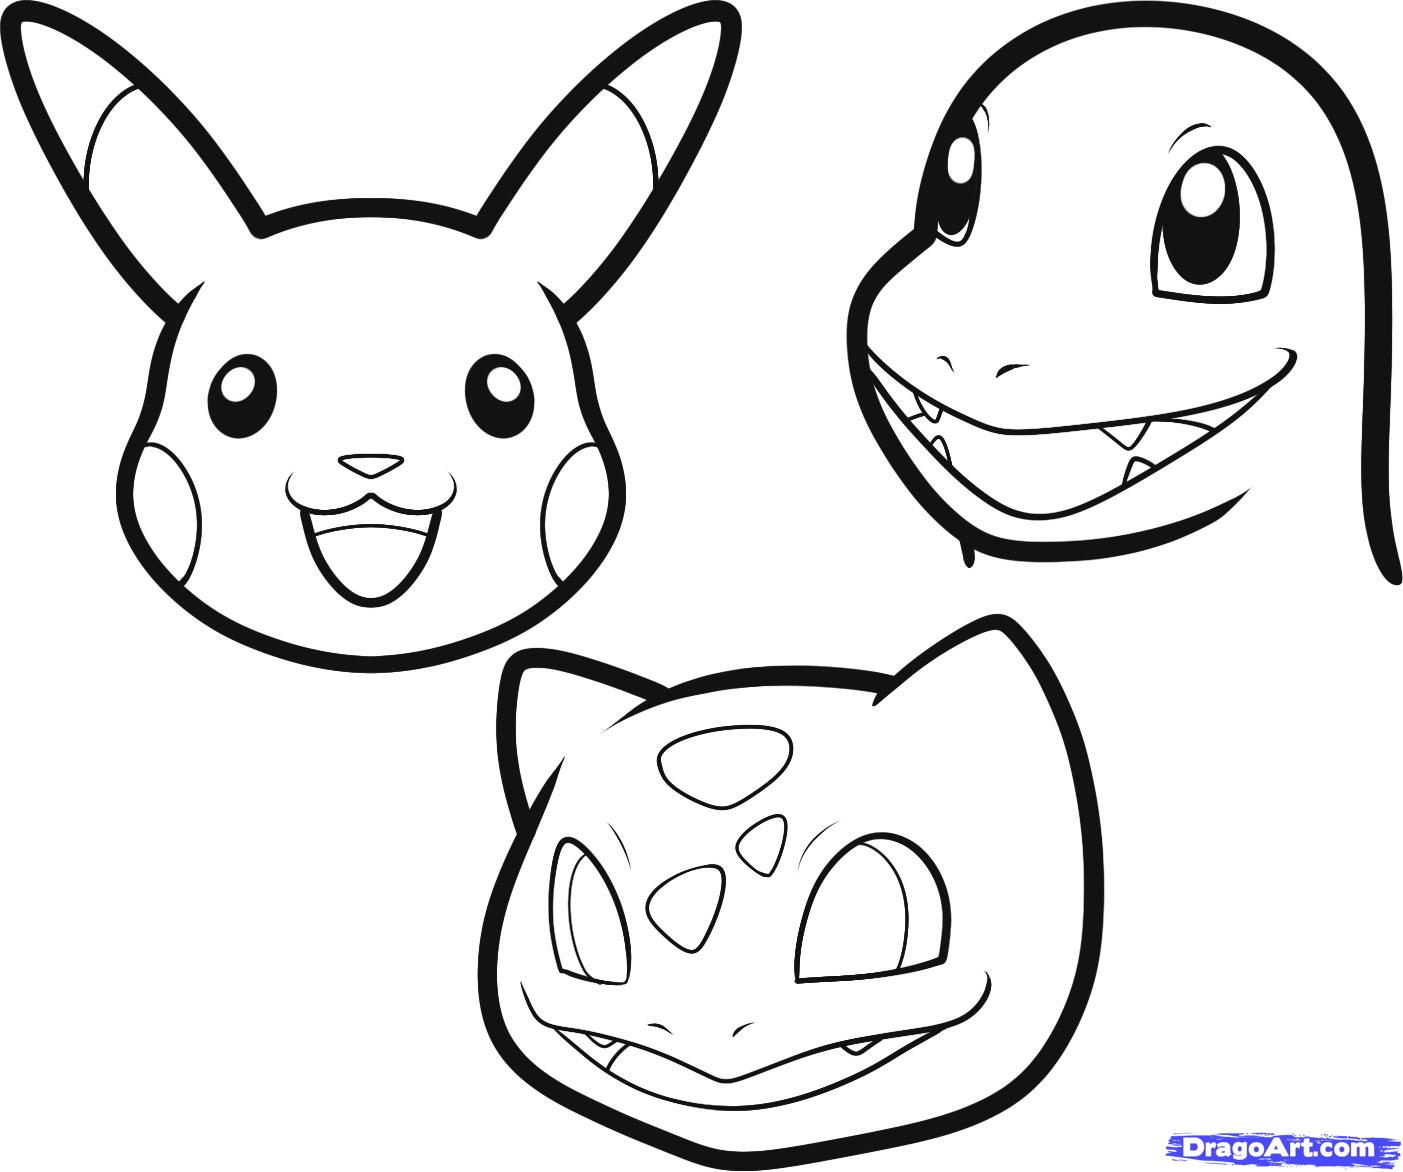 Free Cool Easy Drawings Download Free Clip Art Free Clip